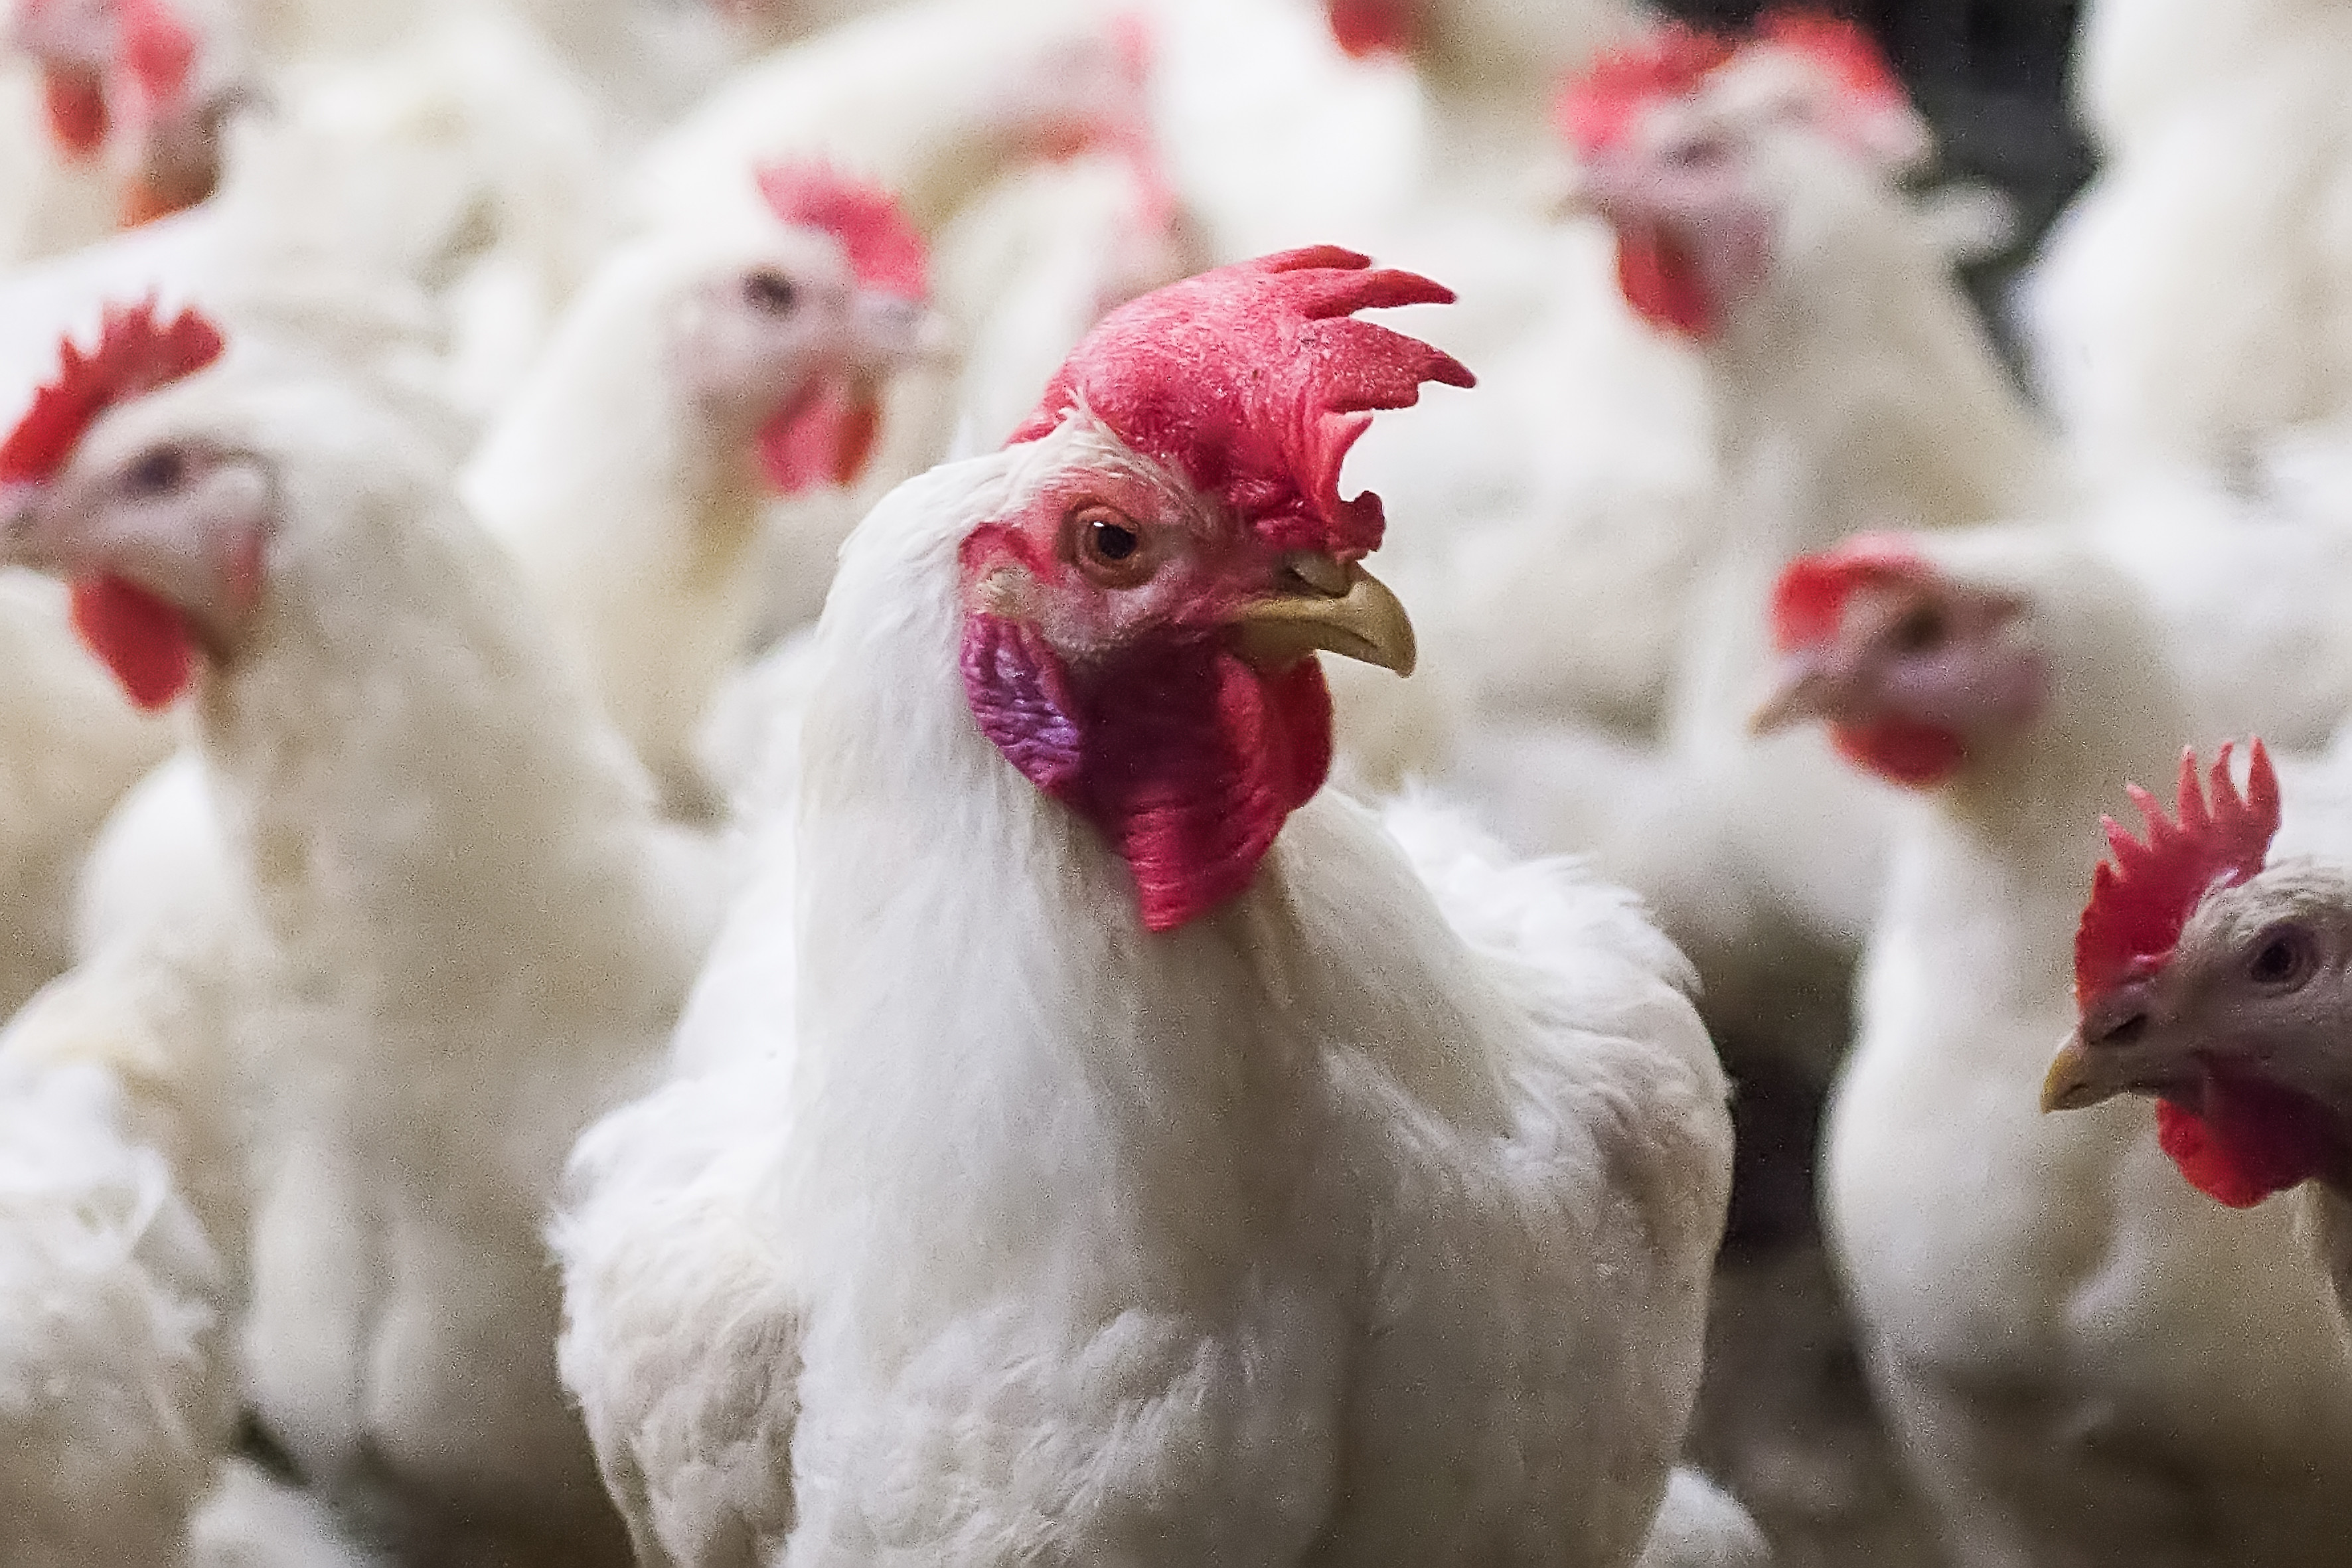 Cargill reduces poultry antibiotics use by 55% in the UK. Photo: Ronald Hissink